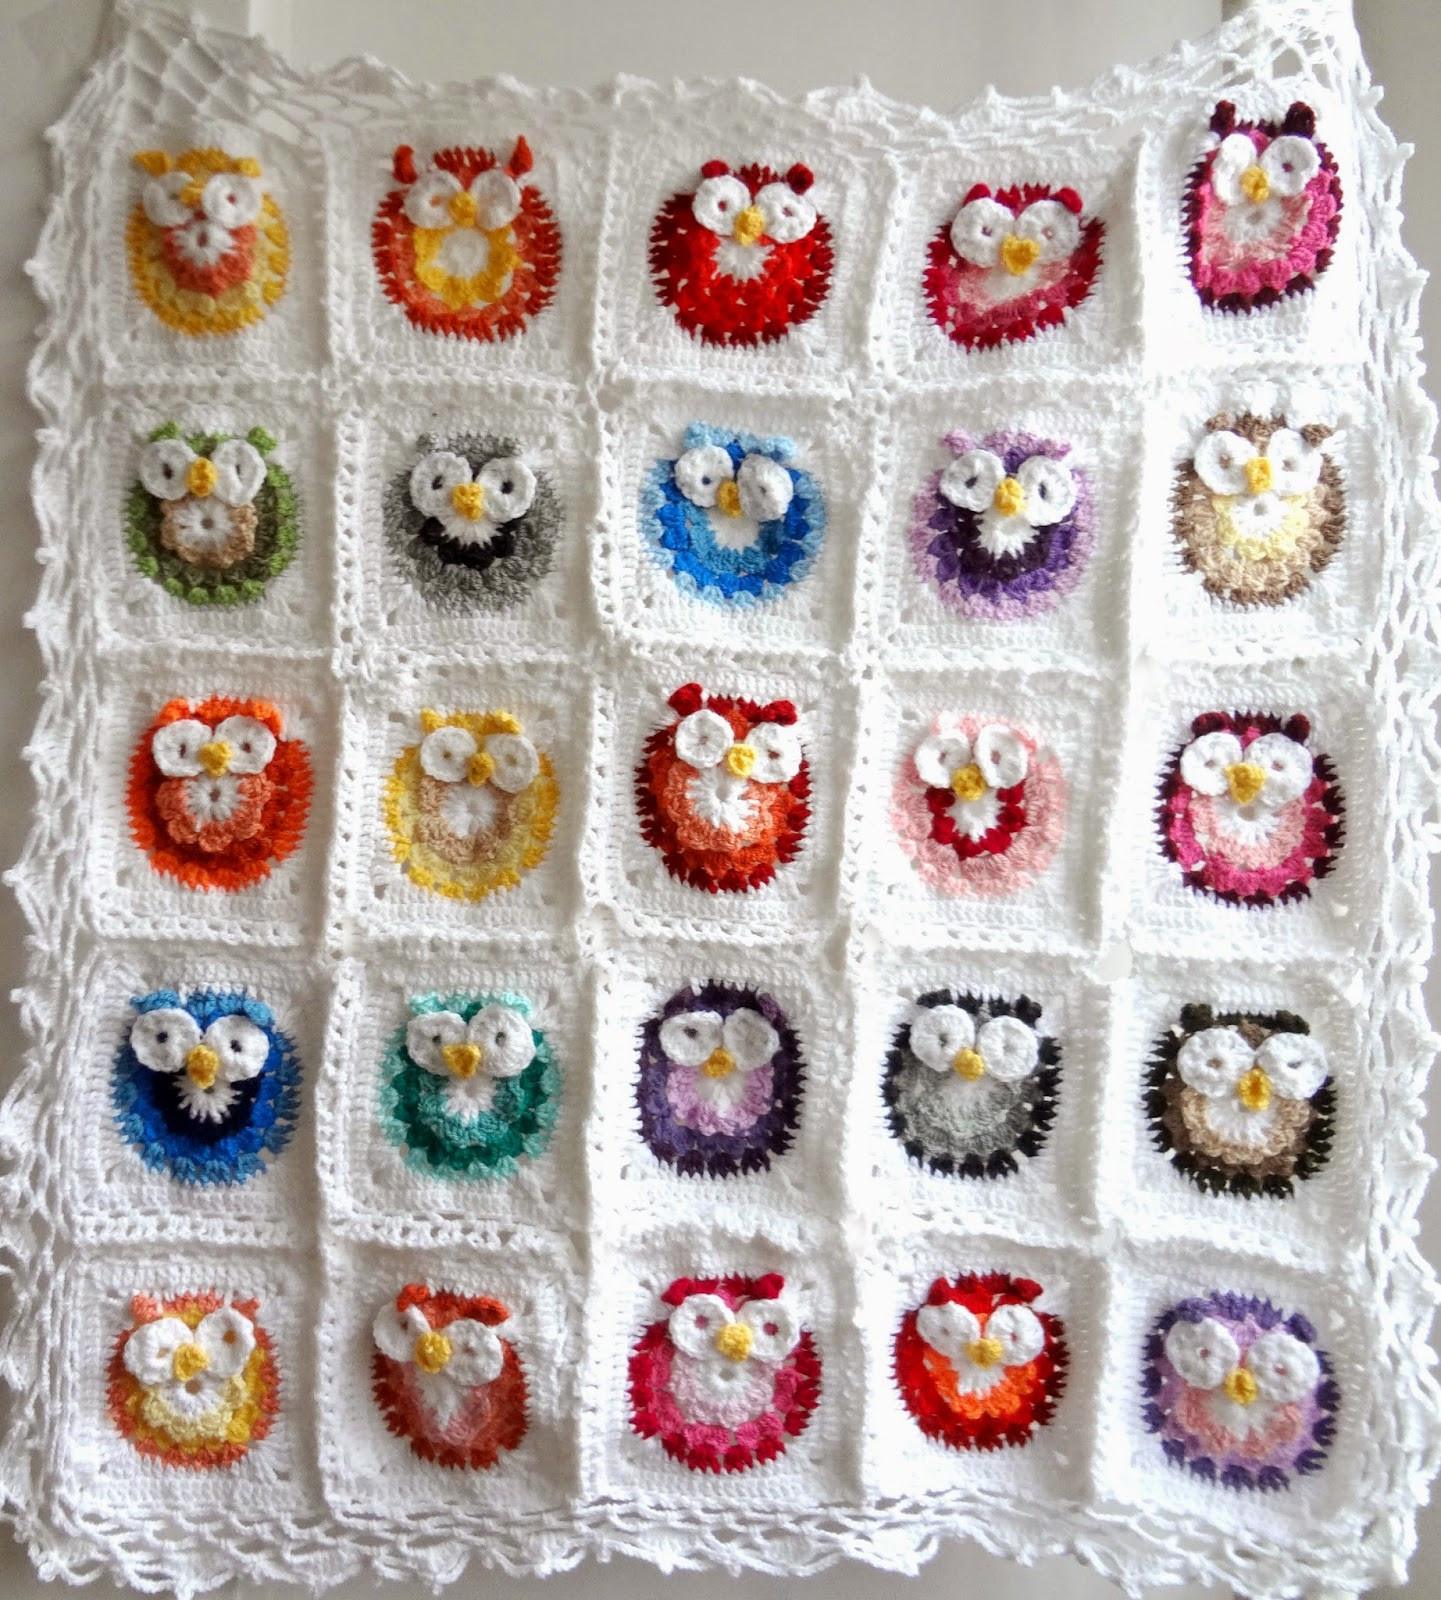 Crochet Quilts Inspirational Little Treasures Crochet Owl Blanket Pattern Of Unique 45 Pics Crochet Quilts